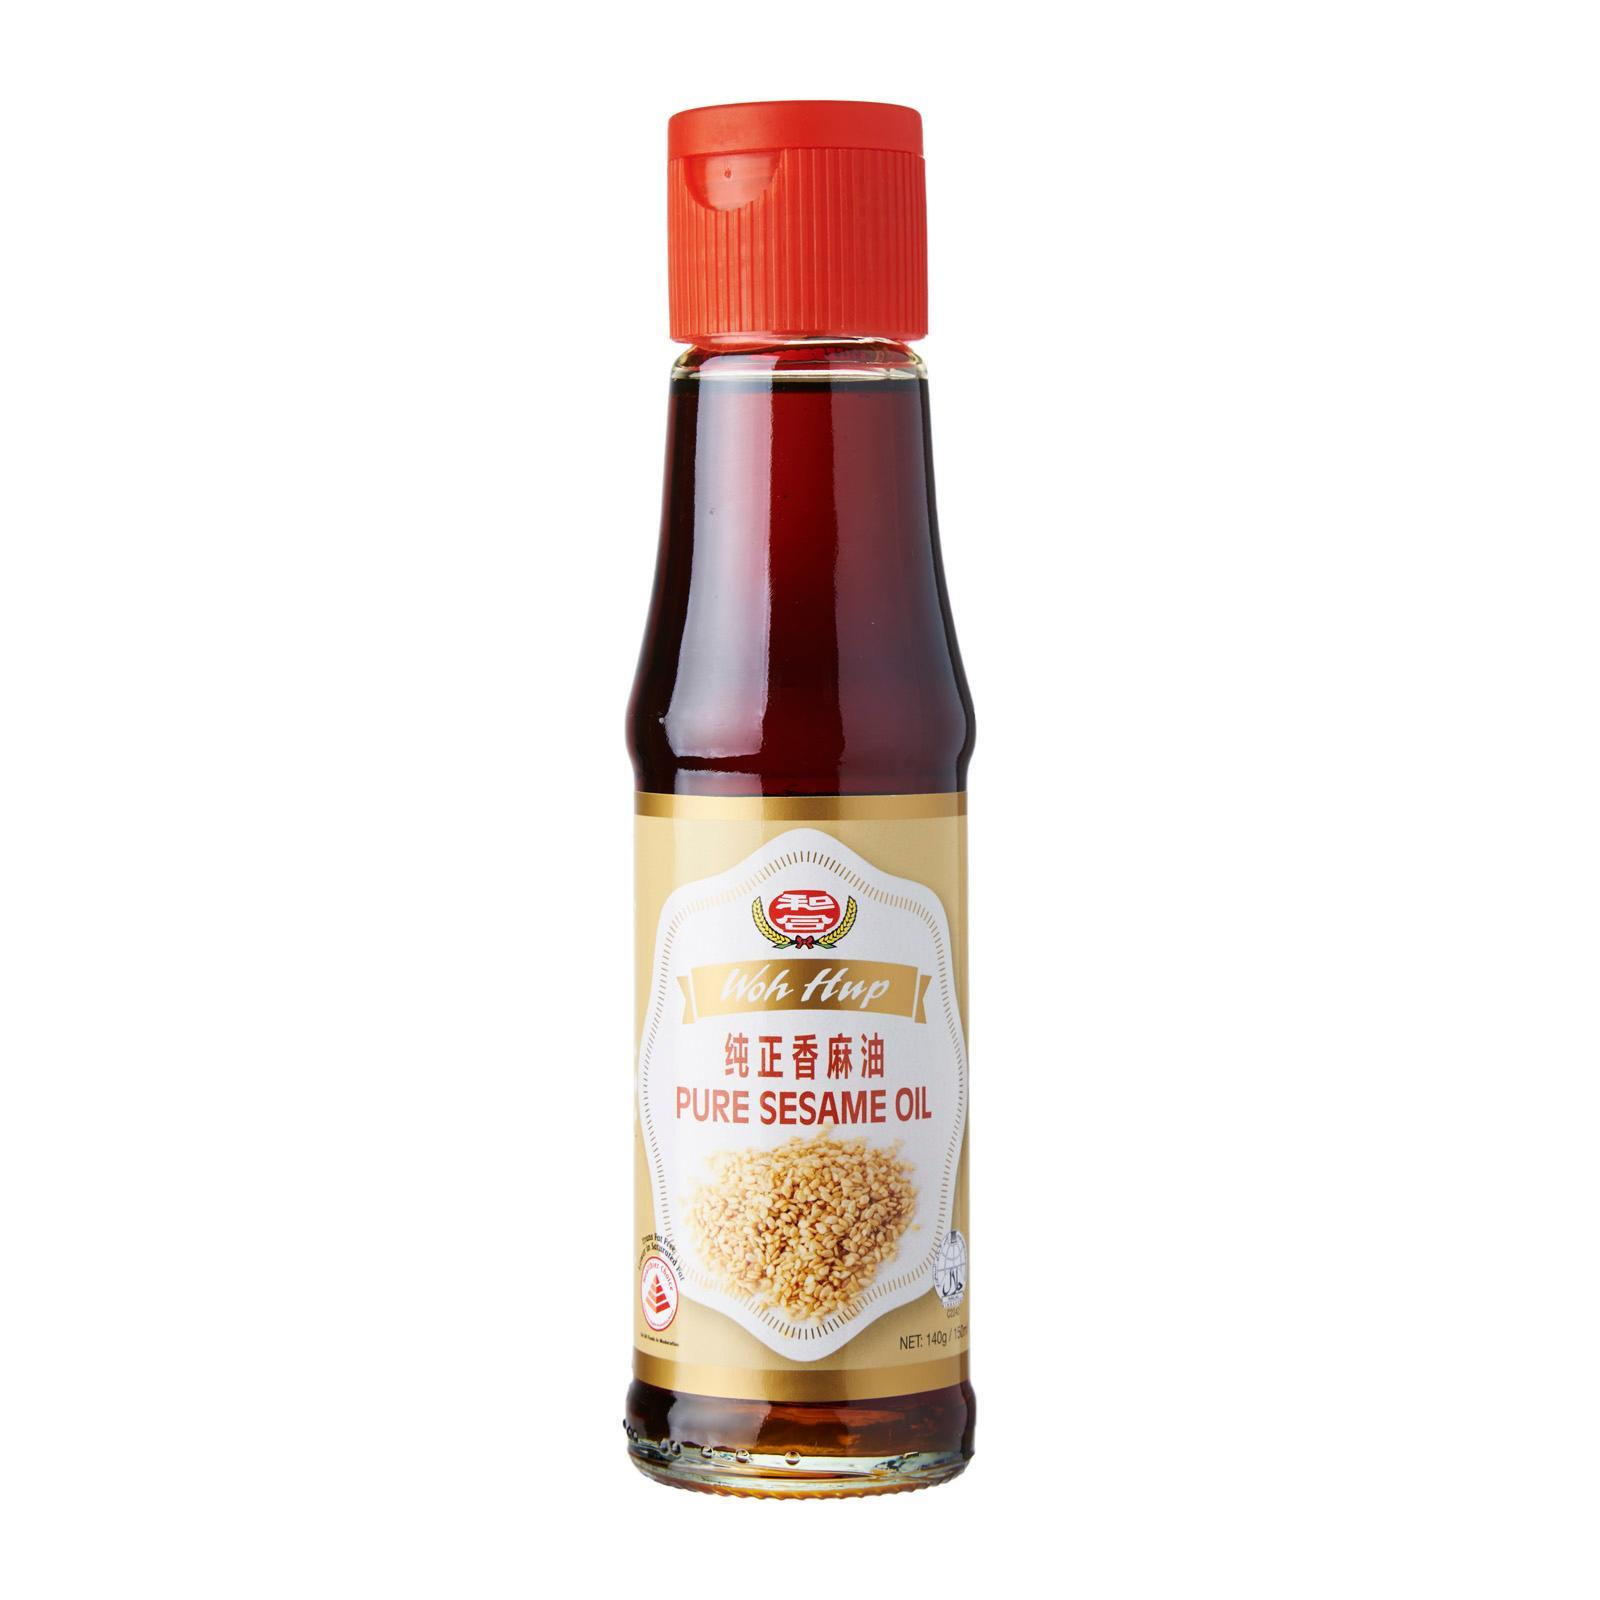 Woh Hup Pure Sesame Oil By Redmart.